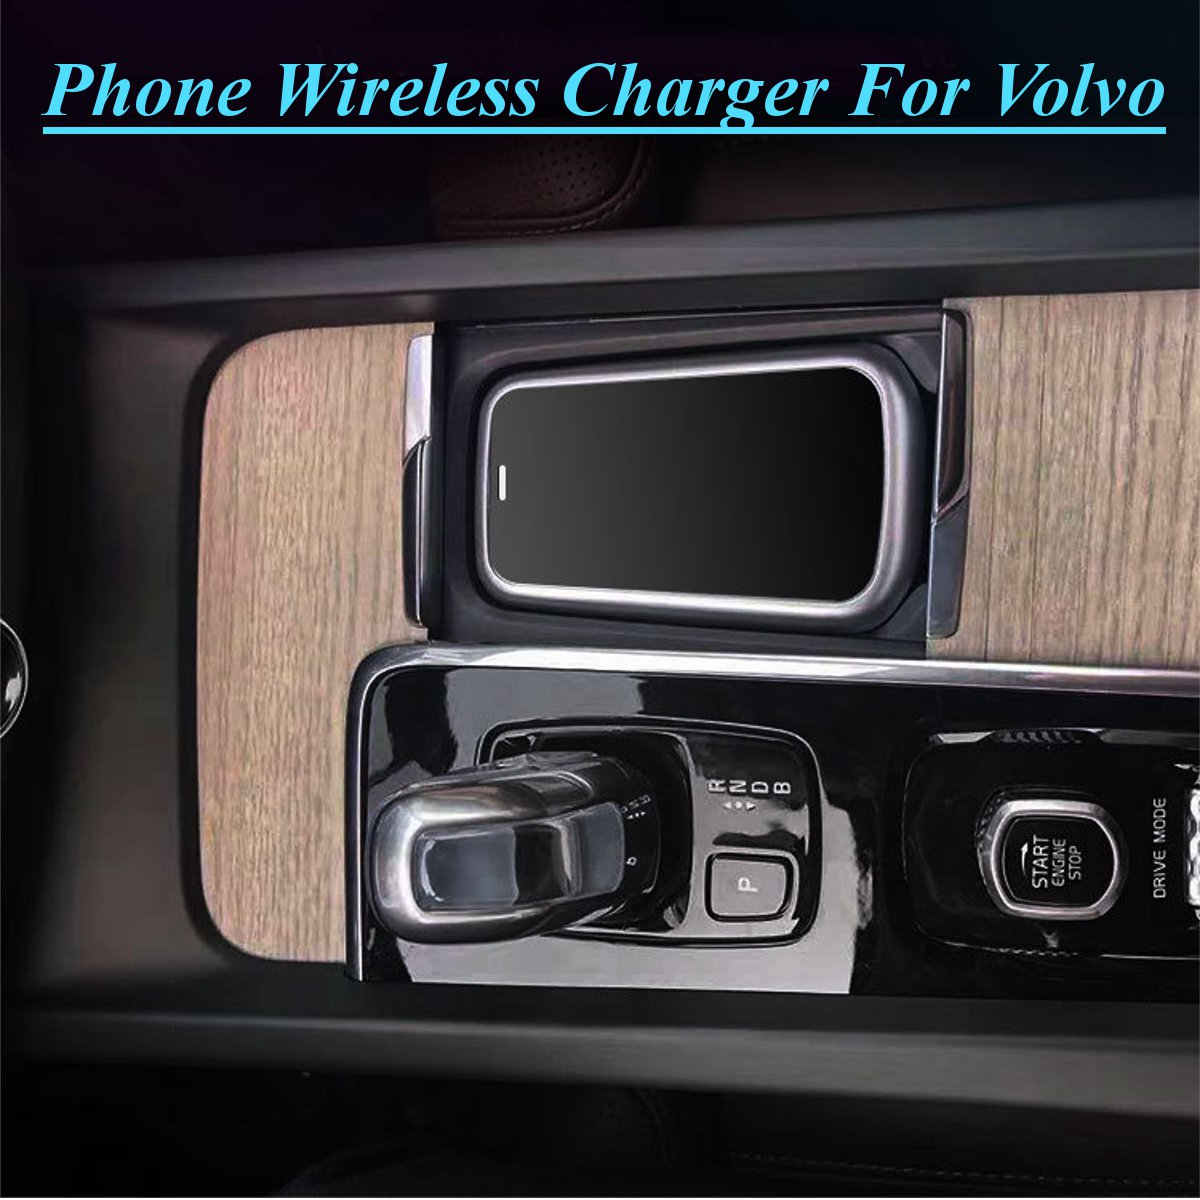 MG-SPA Car Phone Charging Qi Wireless Charger For Volvo XC90 S60 XC60 S90 C60 V60 For Samsung Note 9 S9 S8